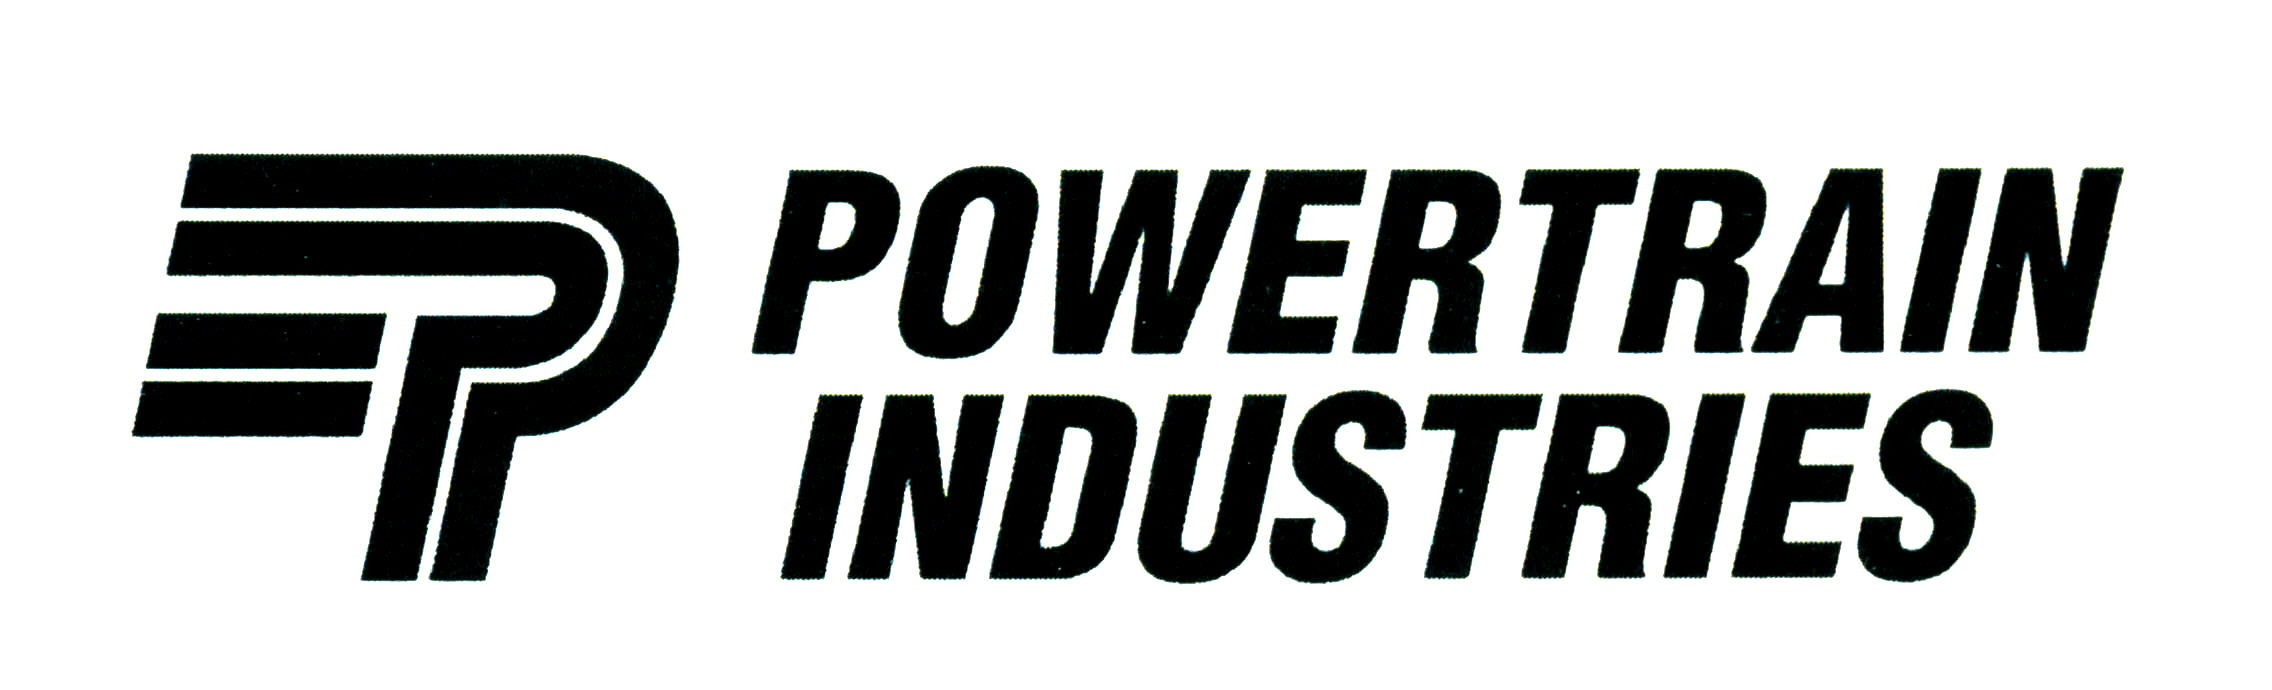 Image result for Powertrain Industries logo